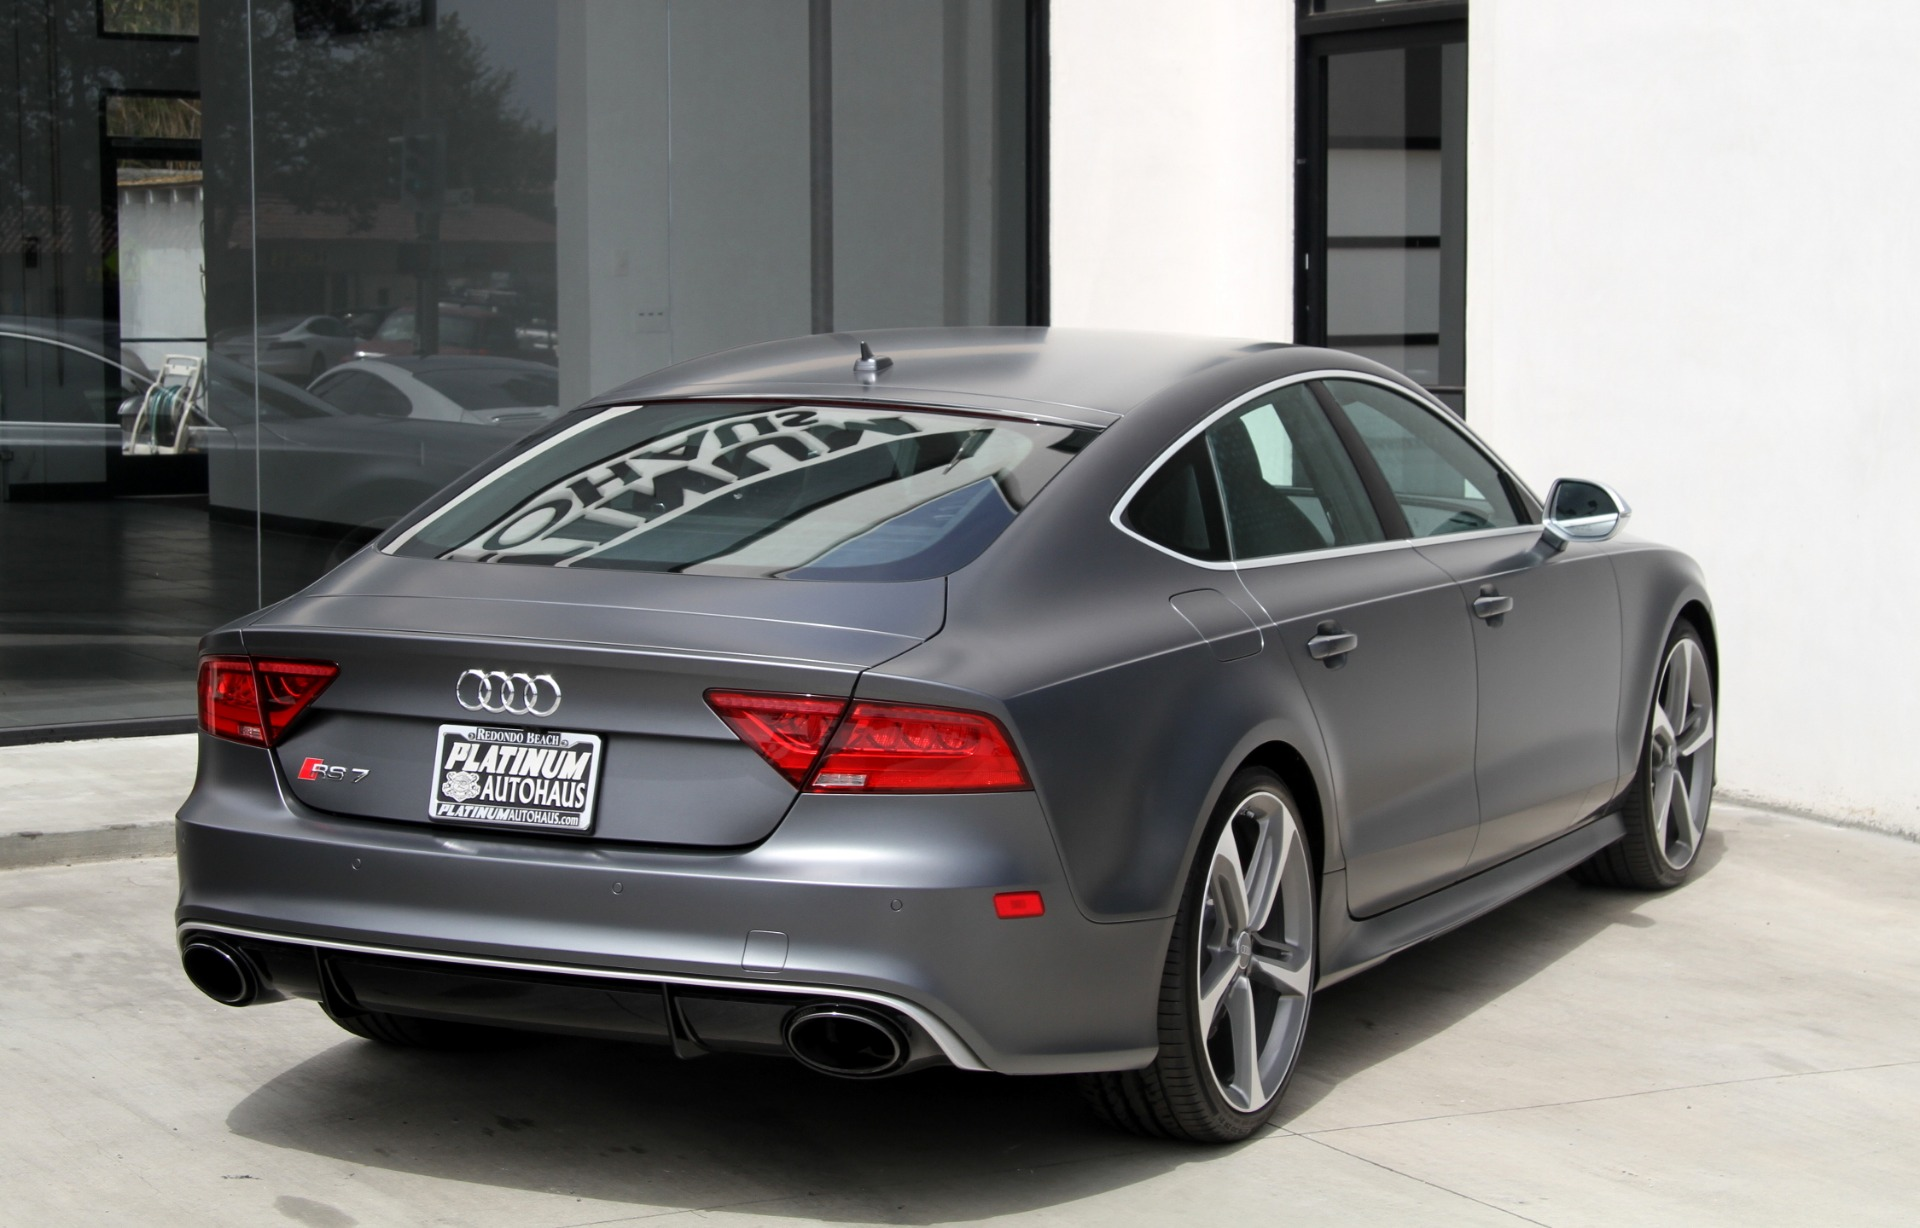 Audi Dealership Near Me >> 2014 Audi RS 7 4.0T Prestige ***FACTORY MATTE PAINT ...